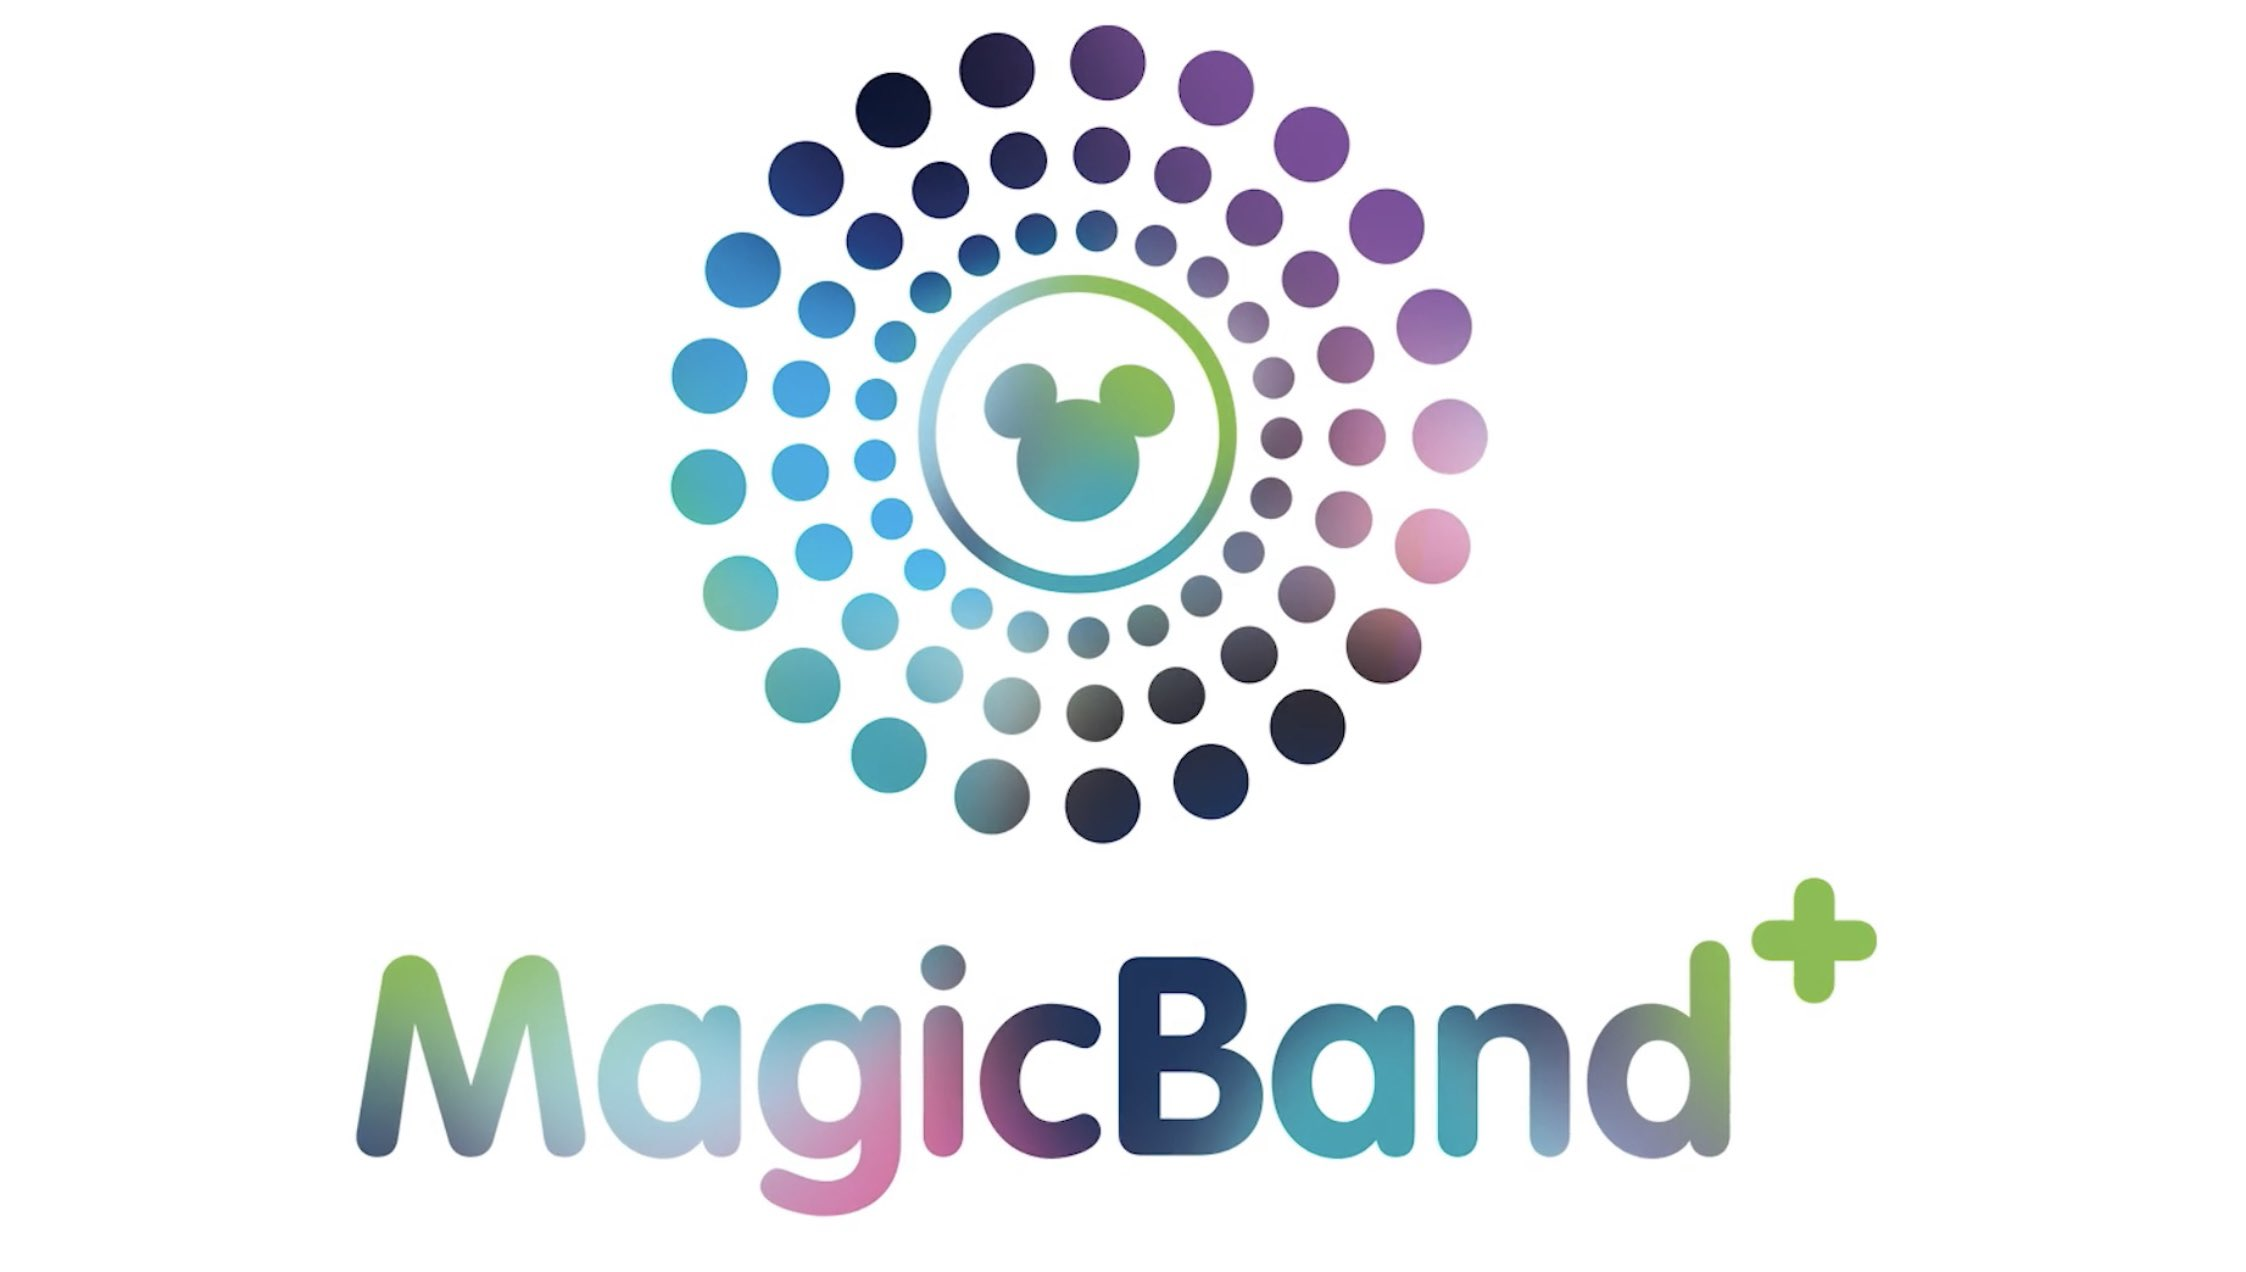 Disney announced MagicBand+, the third generation of the MagicBand